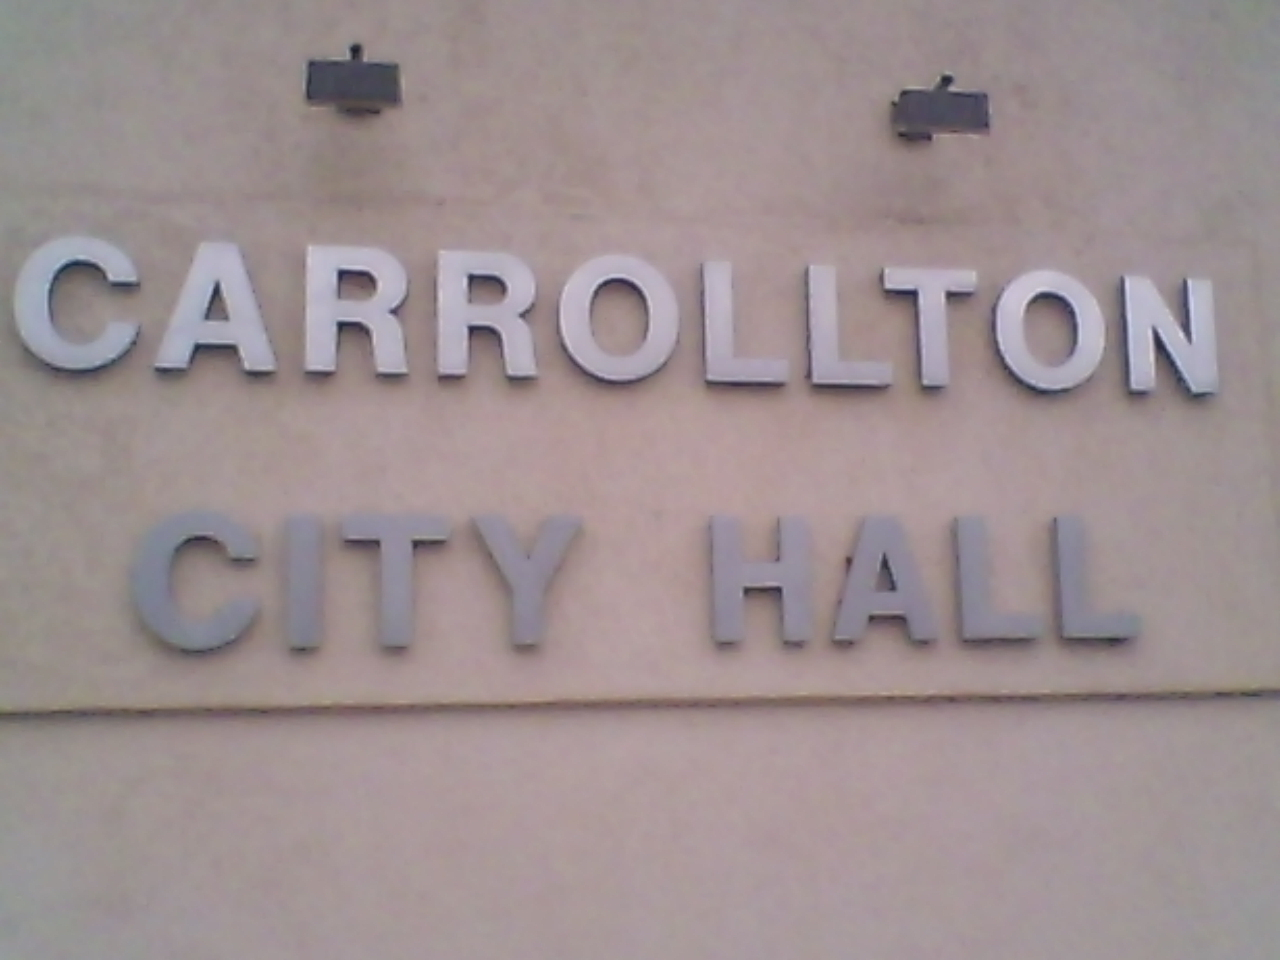 City growth and betterment frequent topics at meeting